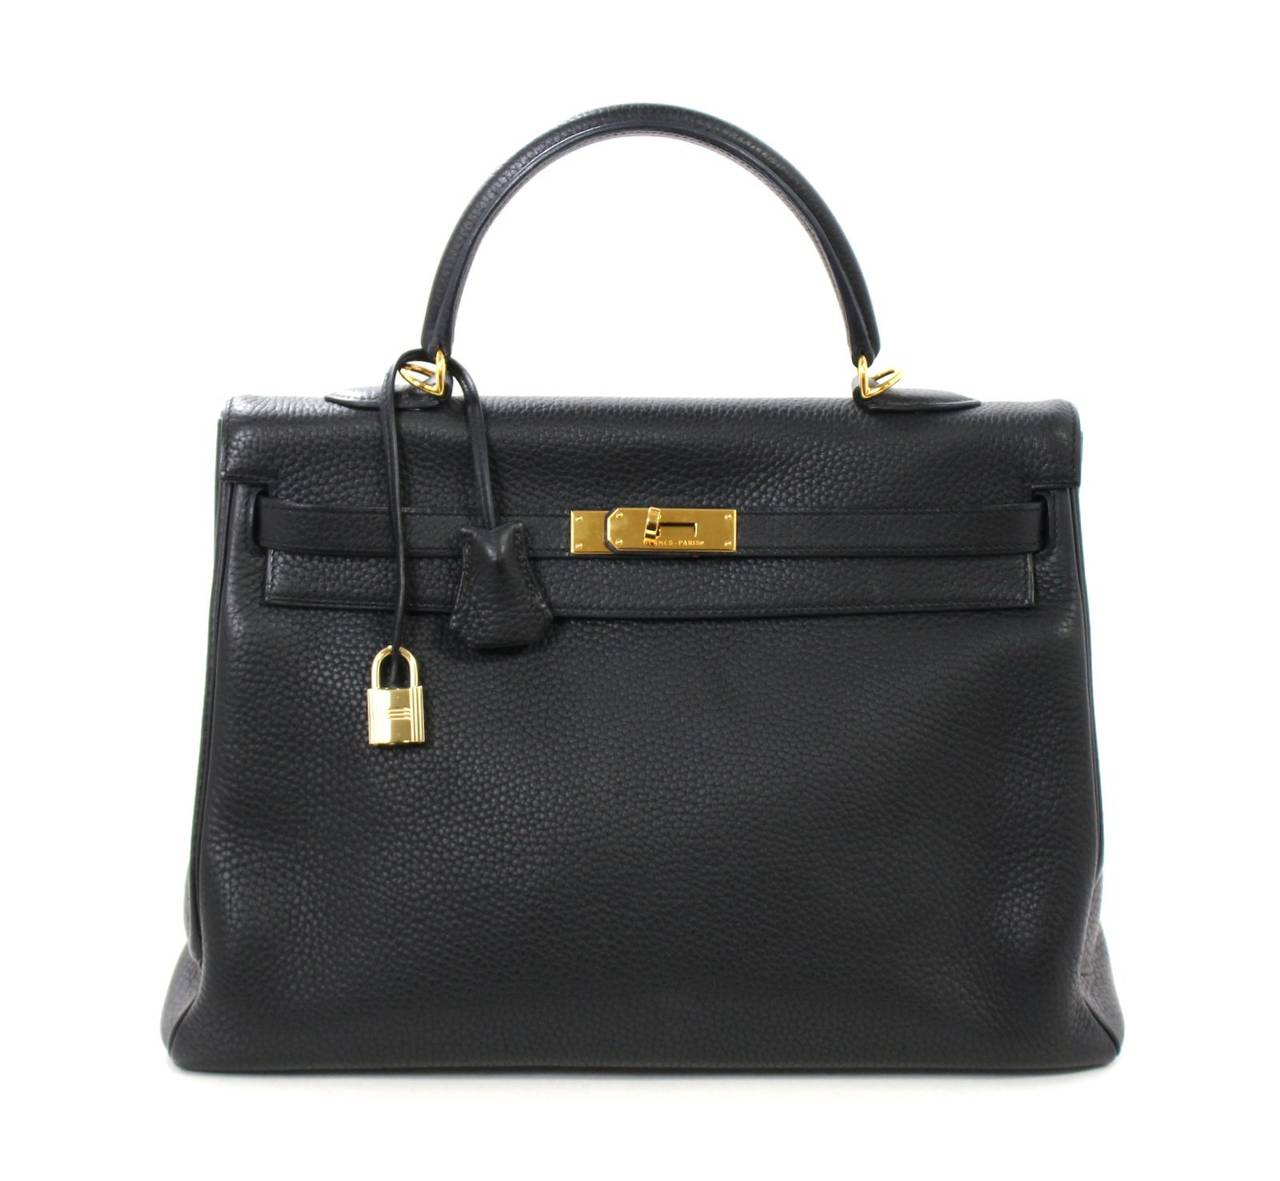 HERMES Kelly Bag- Black Clemence Leather with  Gold, 35 cm 7